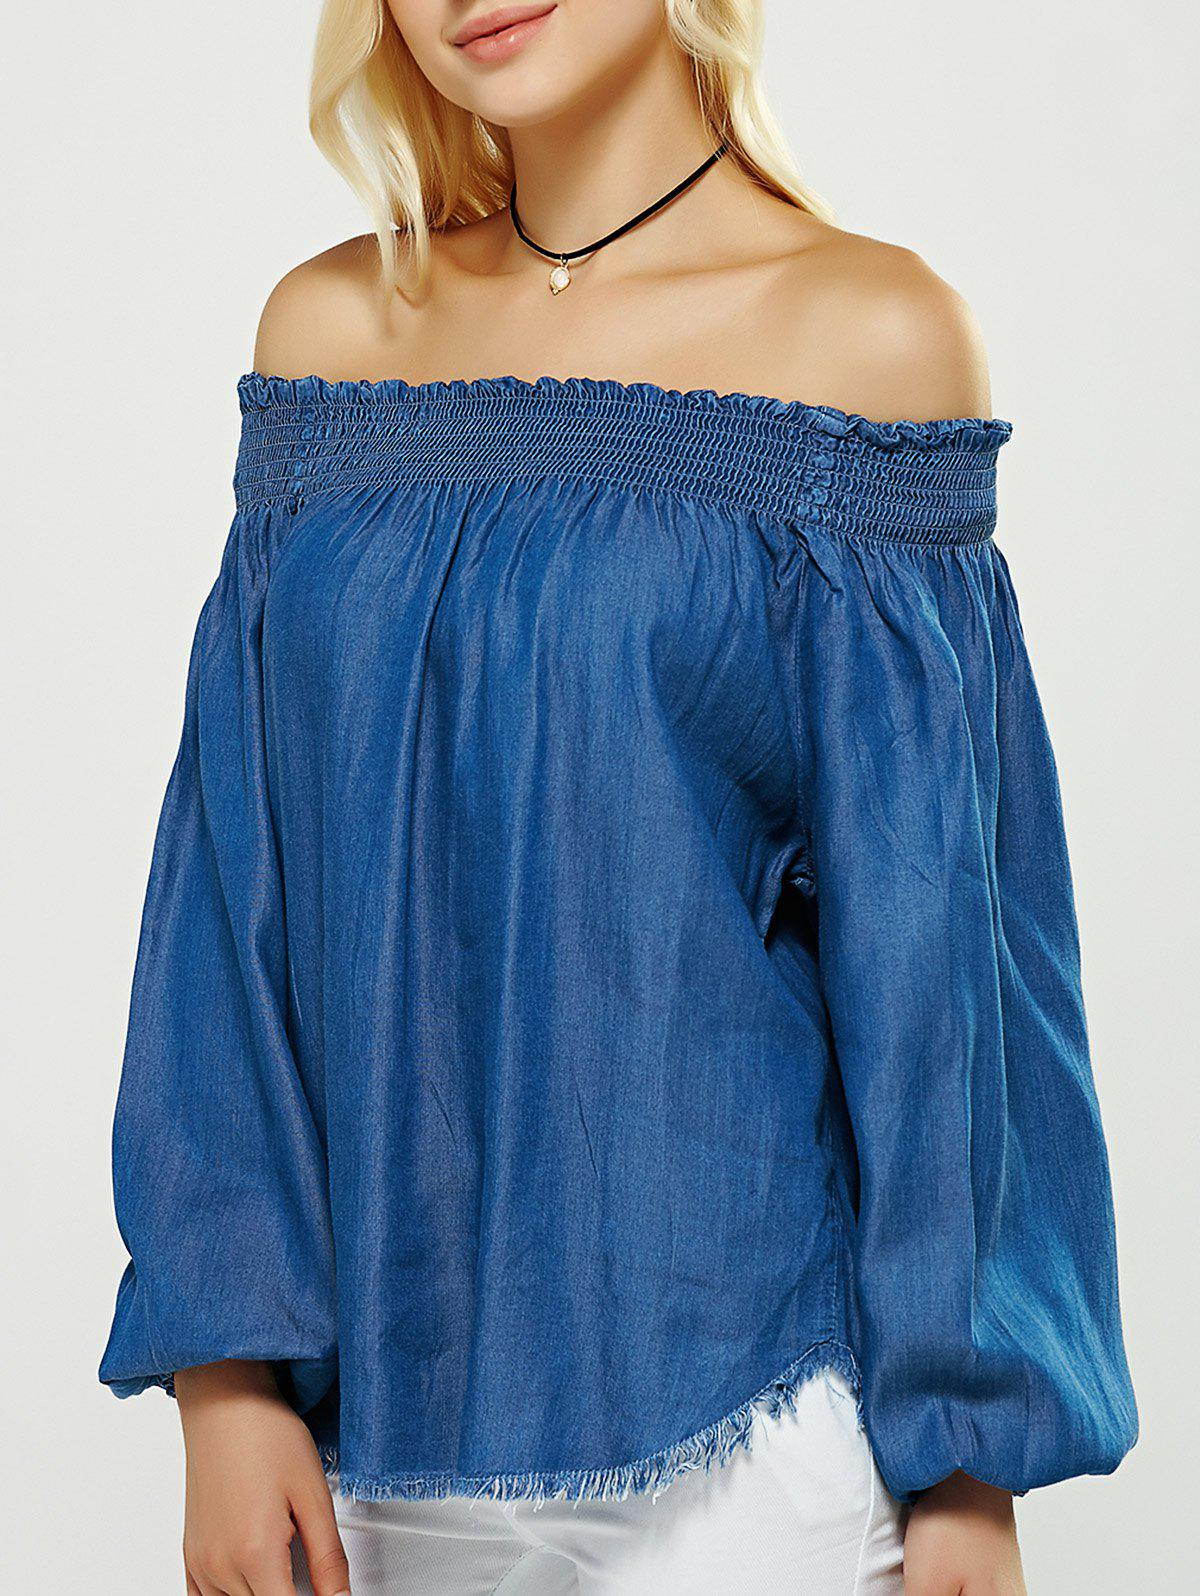 Off-The-Shoulder Fringed Puff Sleeves Denim Blouse - DENIM BLUE L